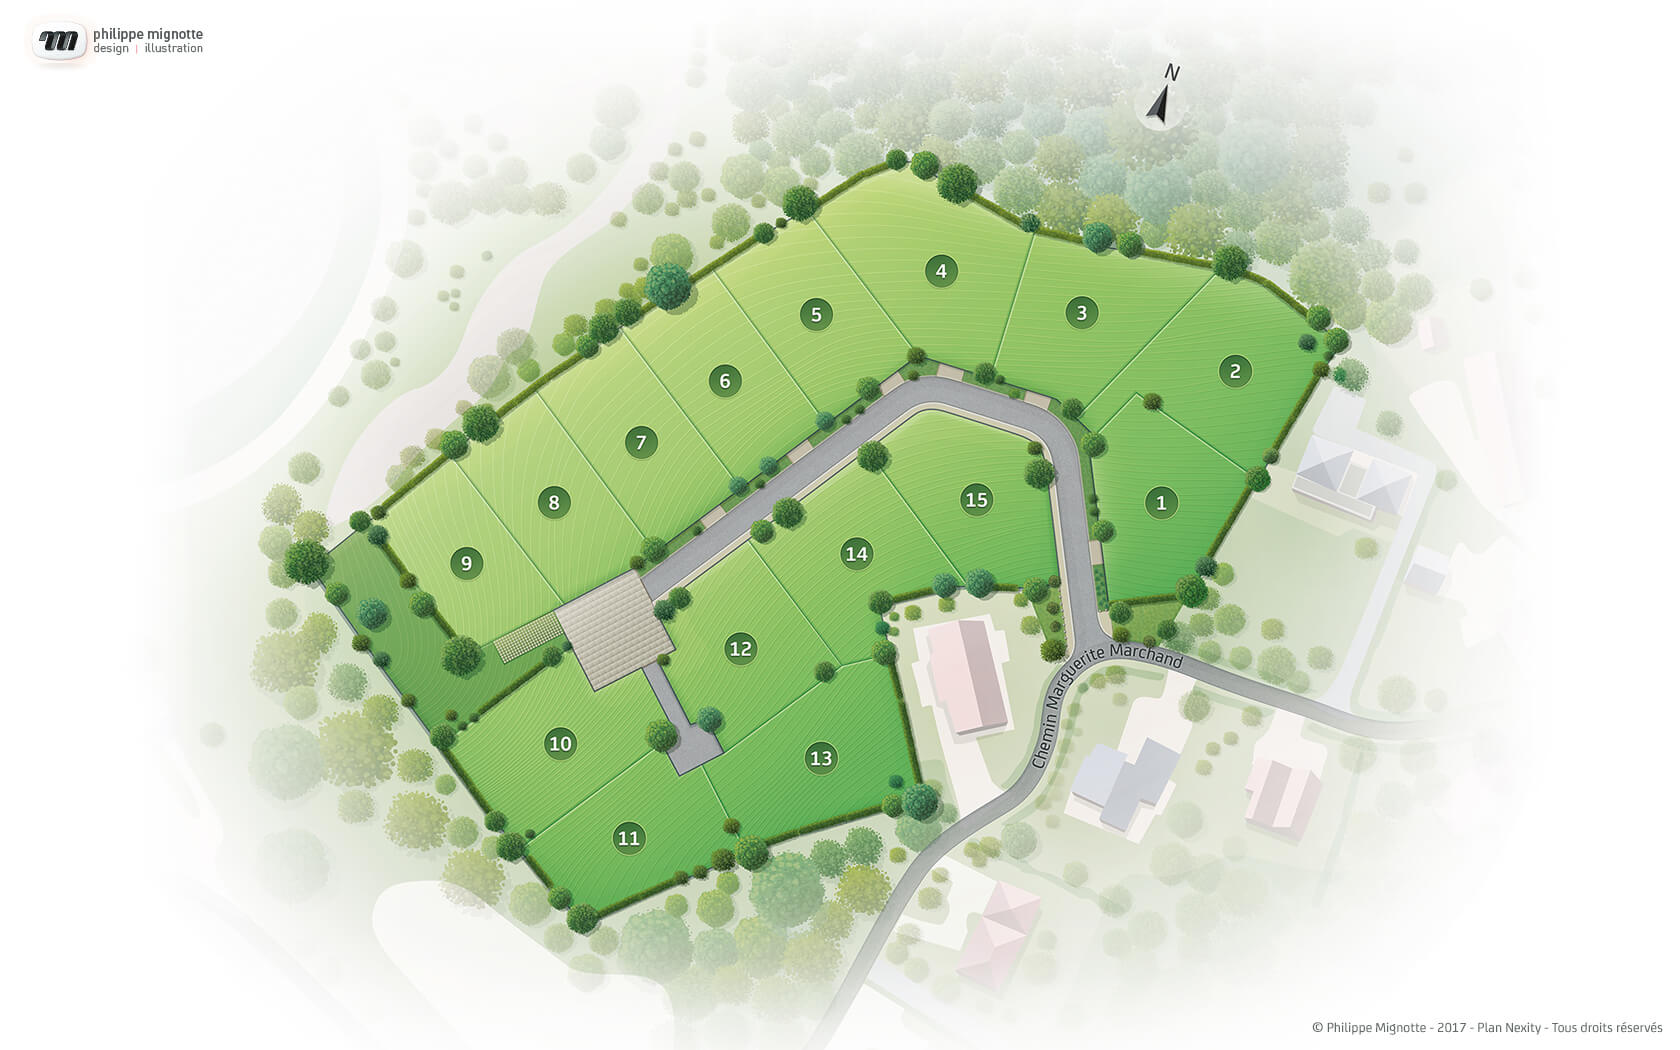 Illustrations plans paysagers Nexity - image Illustration-plan-Paysager-Domaine-Tilleroyes_Besancon-Nexity on https://www.philippe-mignotte.fr